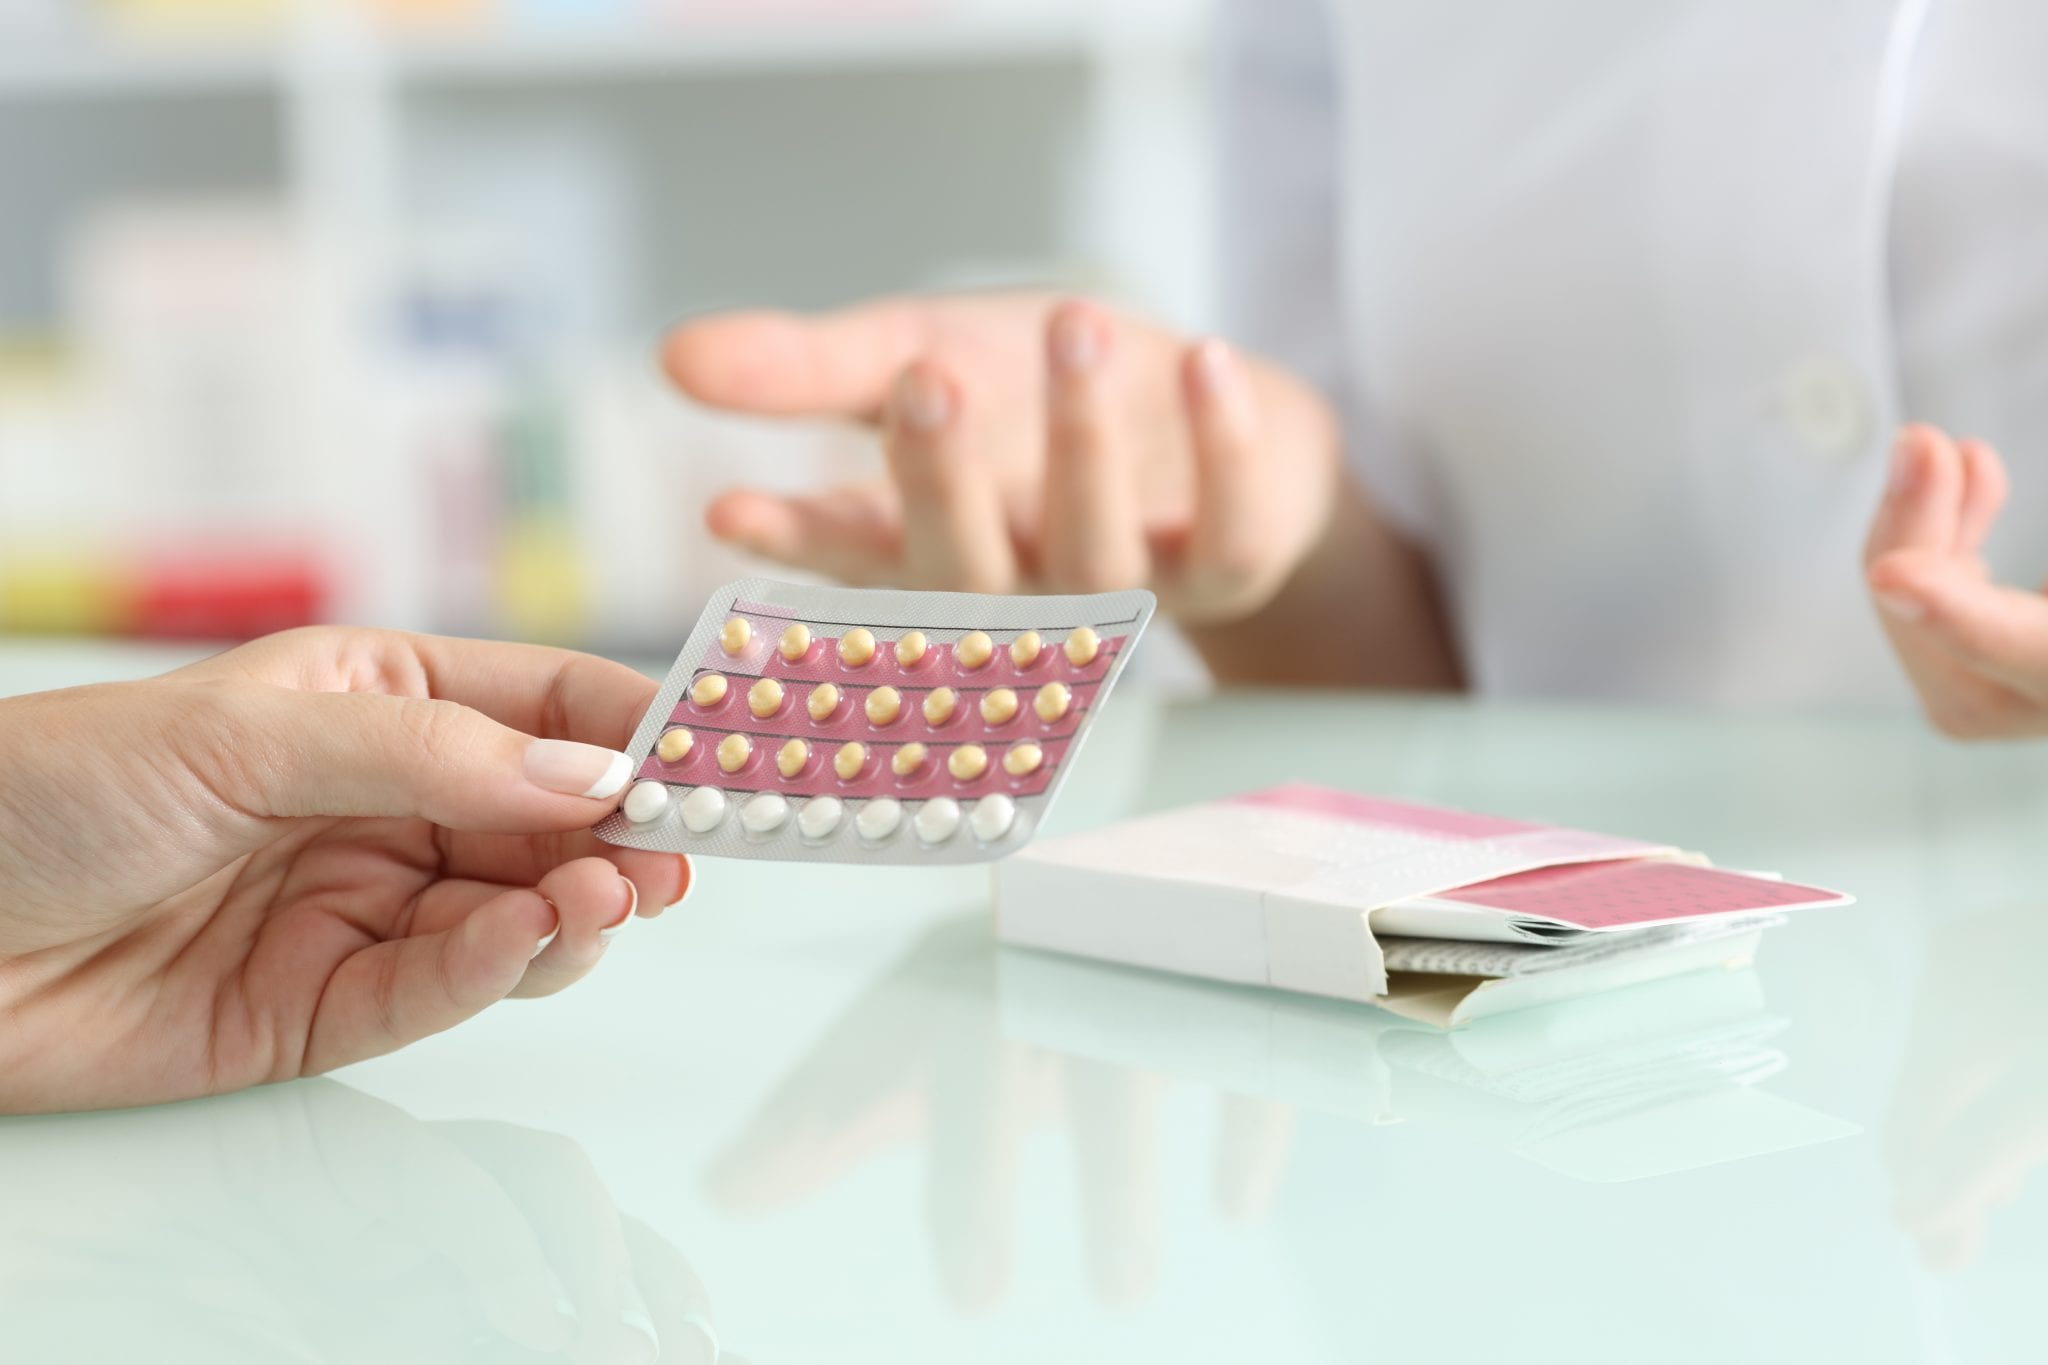 Girl buying contraceptive pills in a pharmacy